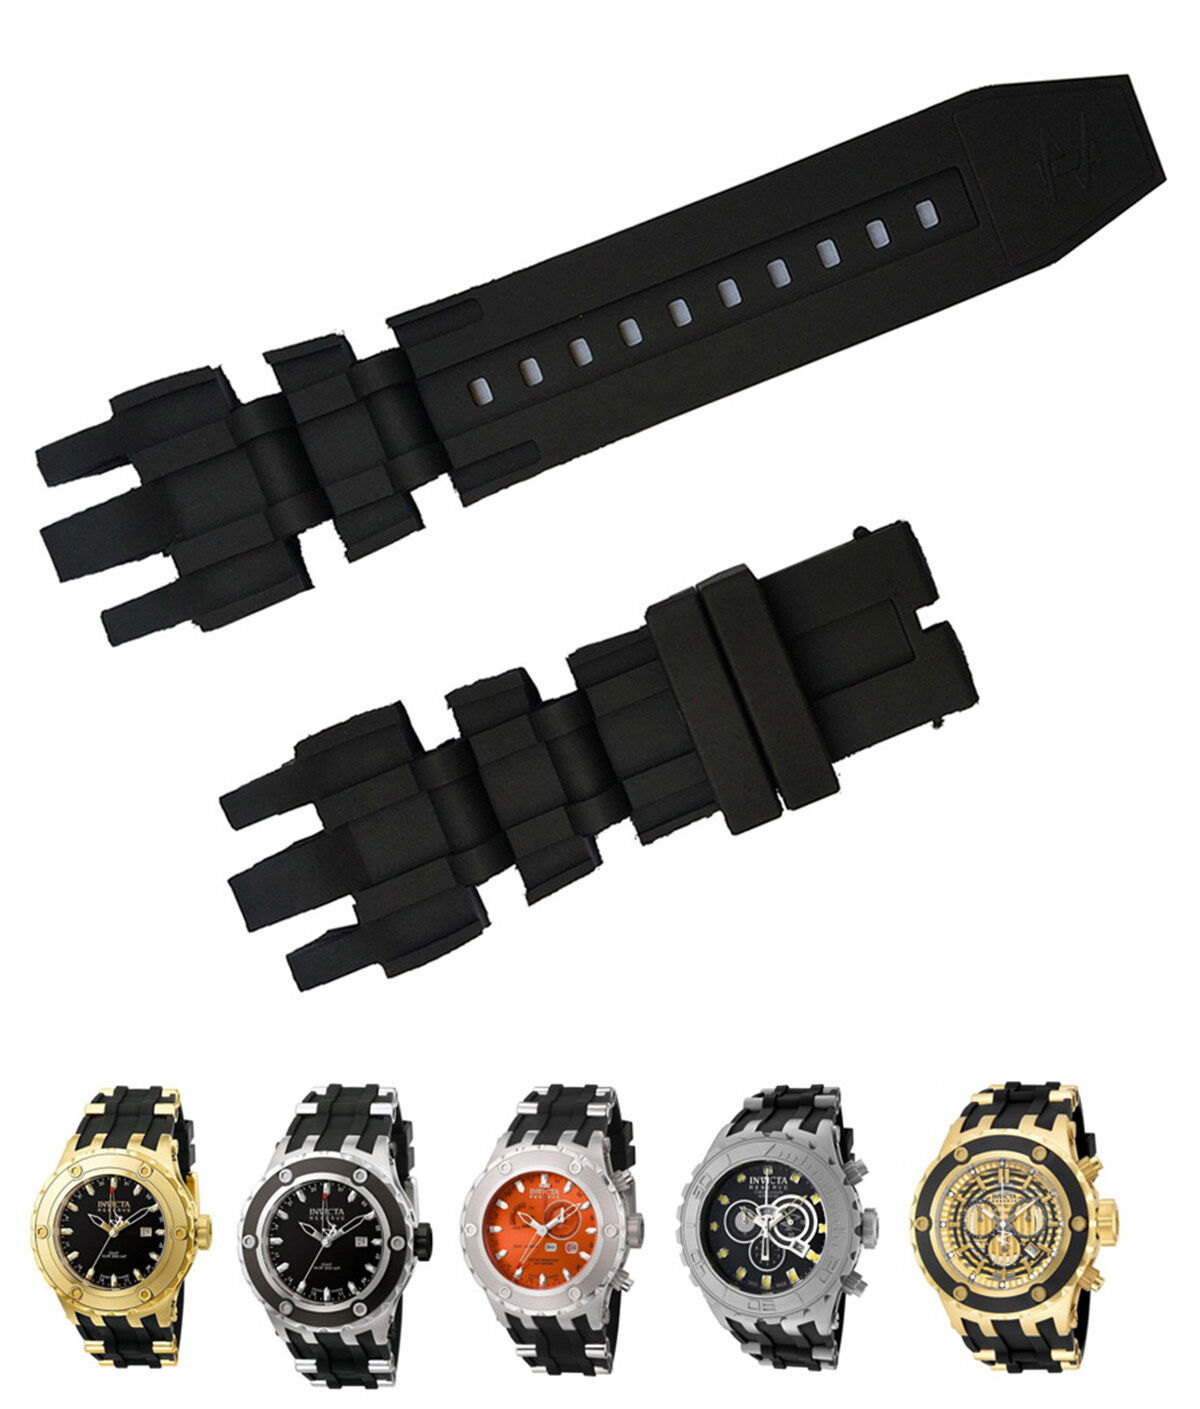 Epic Watch Bands offers a huge selection of high quality watch bands at affordable prices Customize your Apple Watch today with bands to fit your lifestyle Epic